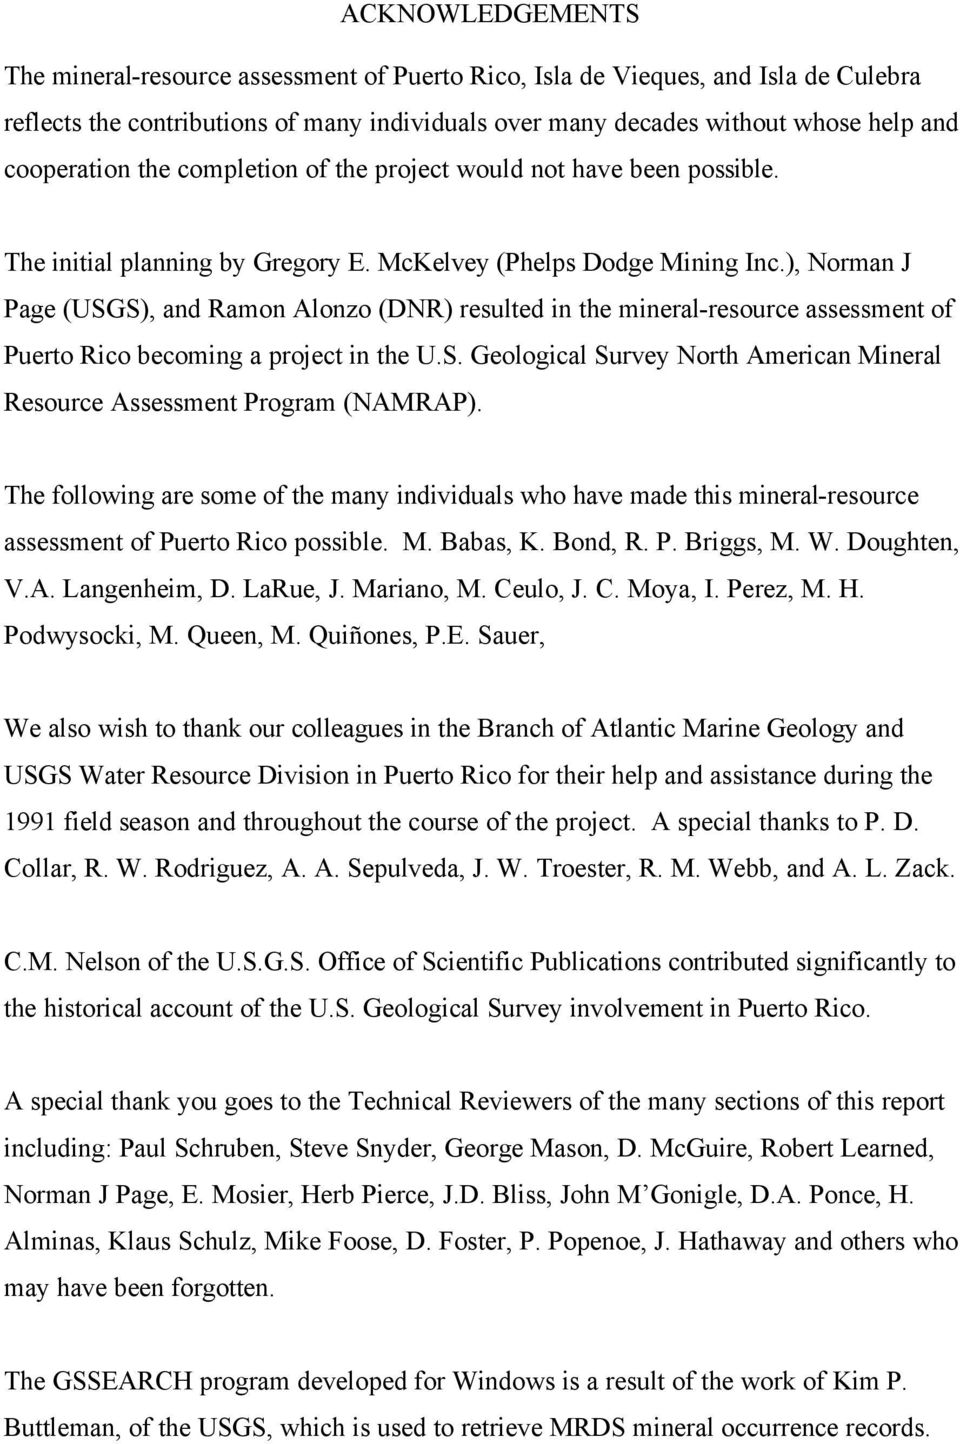 ), Norman J Page (USGS), and Ramon Alonzo (DNR) resulted in the mineral-resource assessment of Puerto Rico becoming a project in the U.S. Geological Survey North American Mineral Resource Assessment Program (NAMRAP).